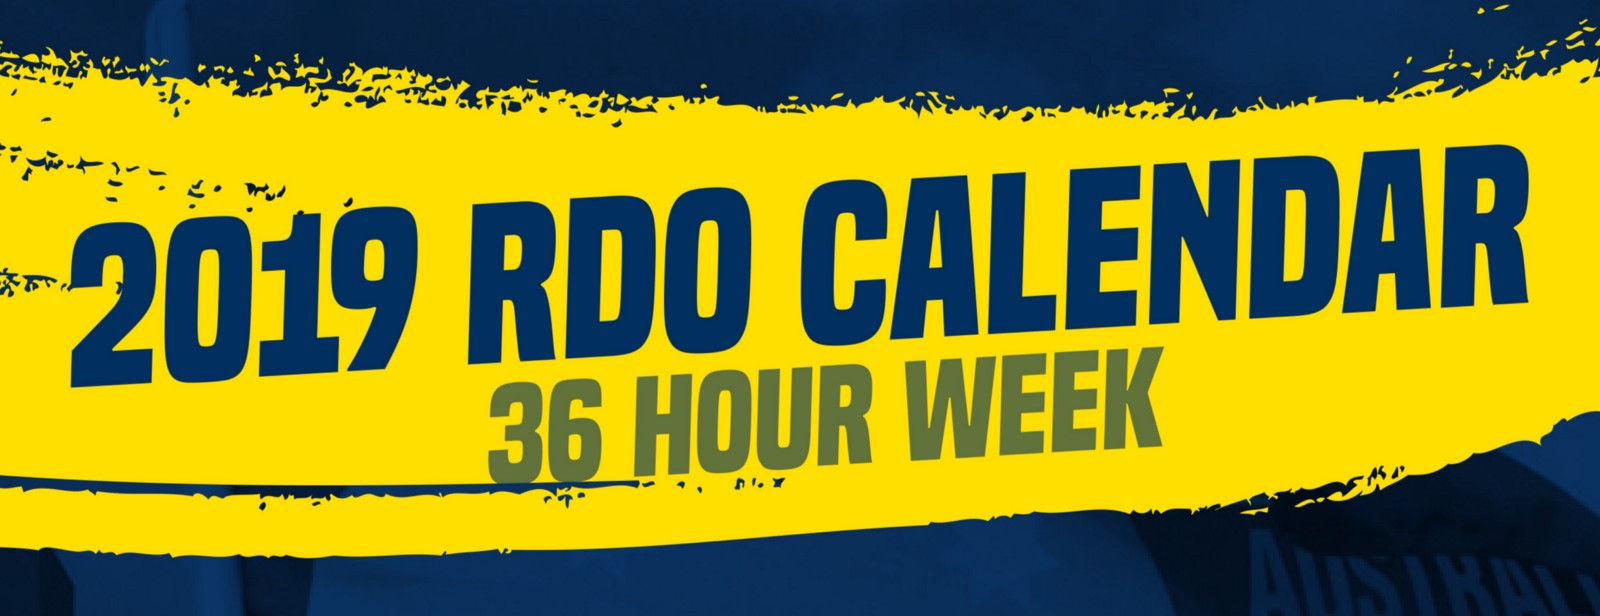 2019 Rdo Calendar 36 Hour Week The Worker Medium